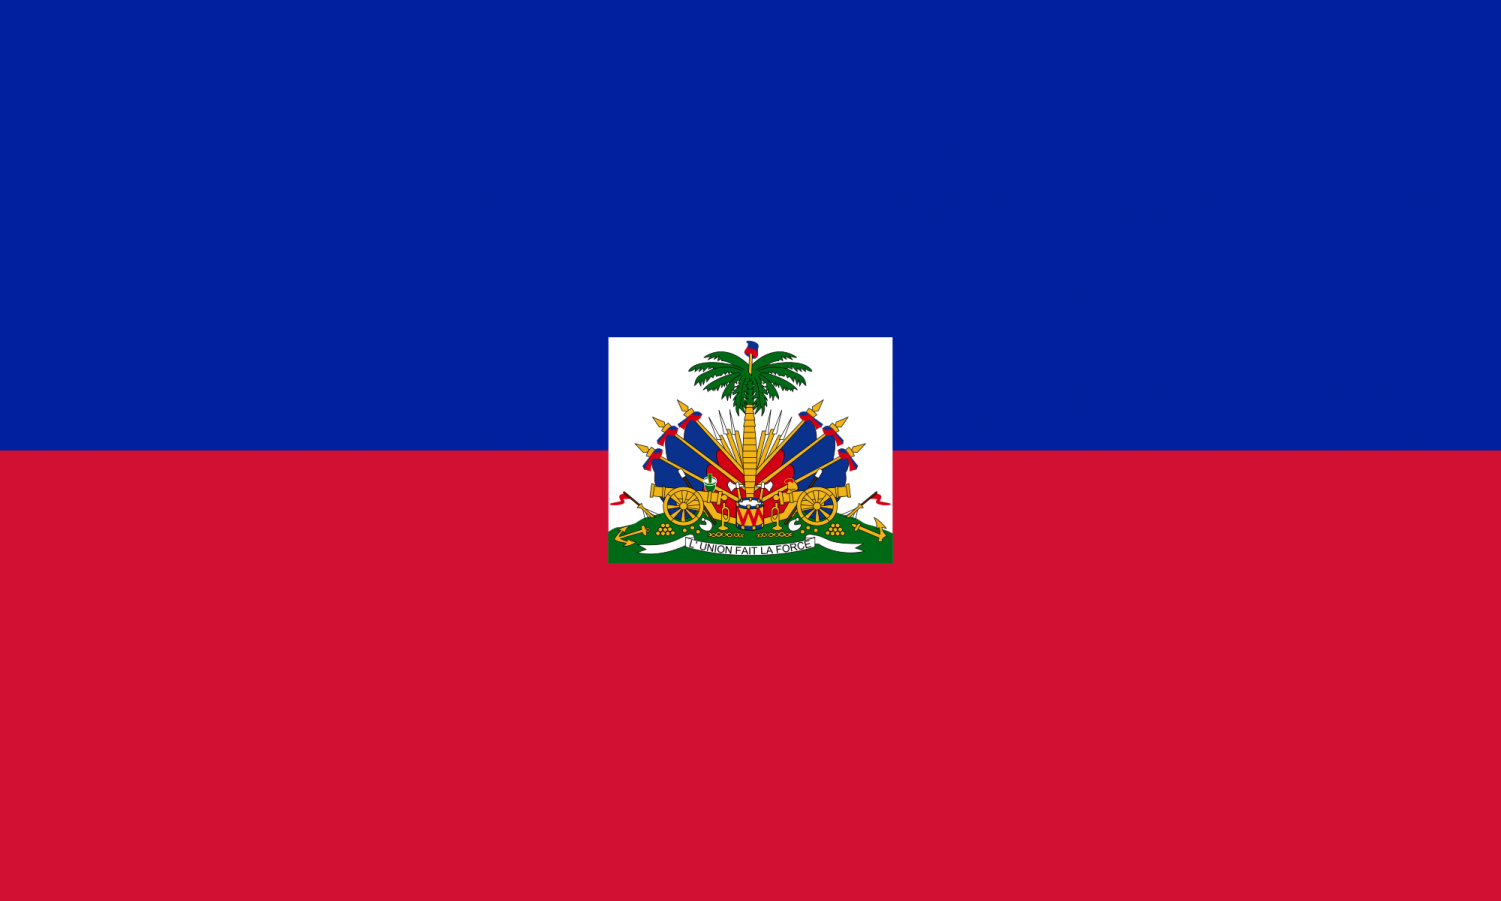 Neg Kreyol, Inc. and Fanm Kreyol, Inc. are clubs with members connected to Haiti, whose flag is shown above. Photo courtesy of Wikipedia